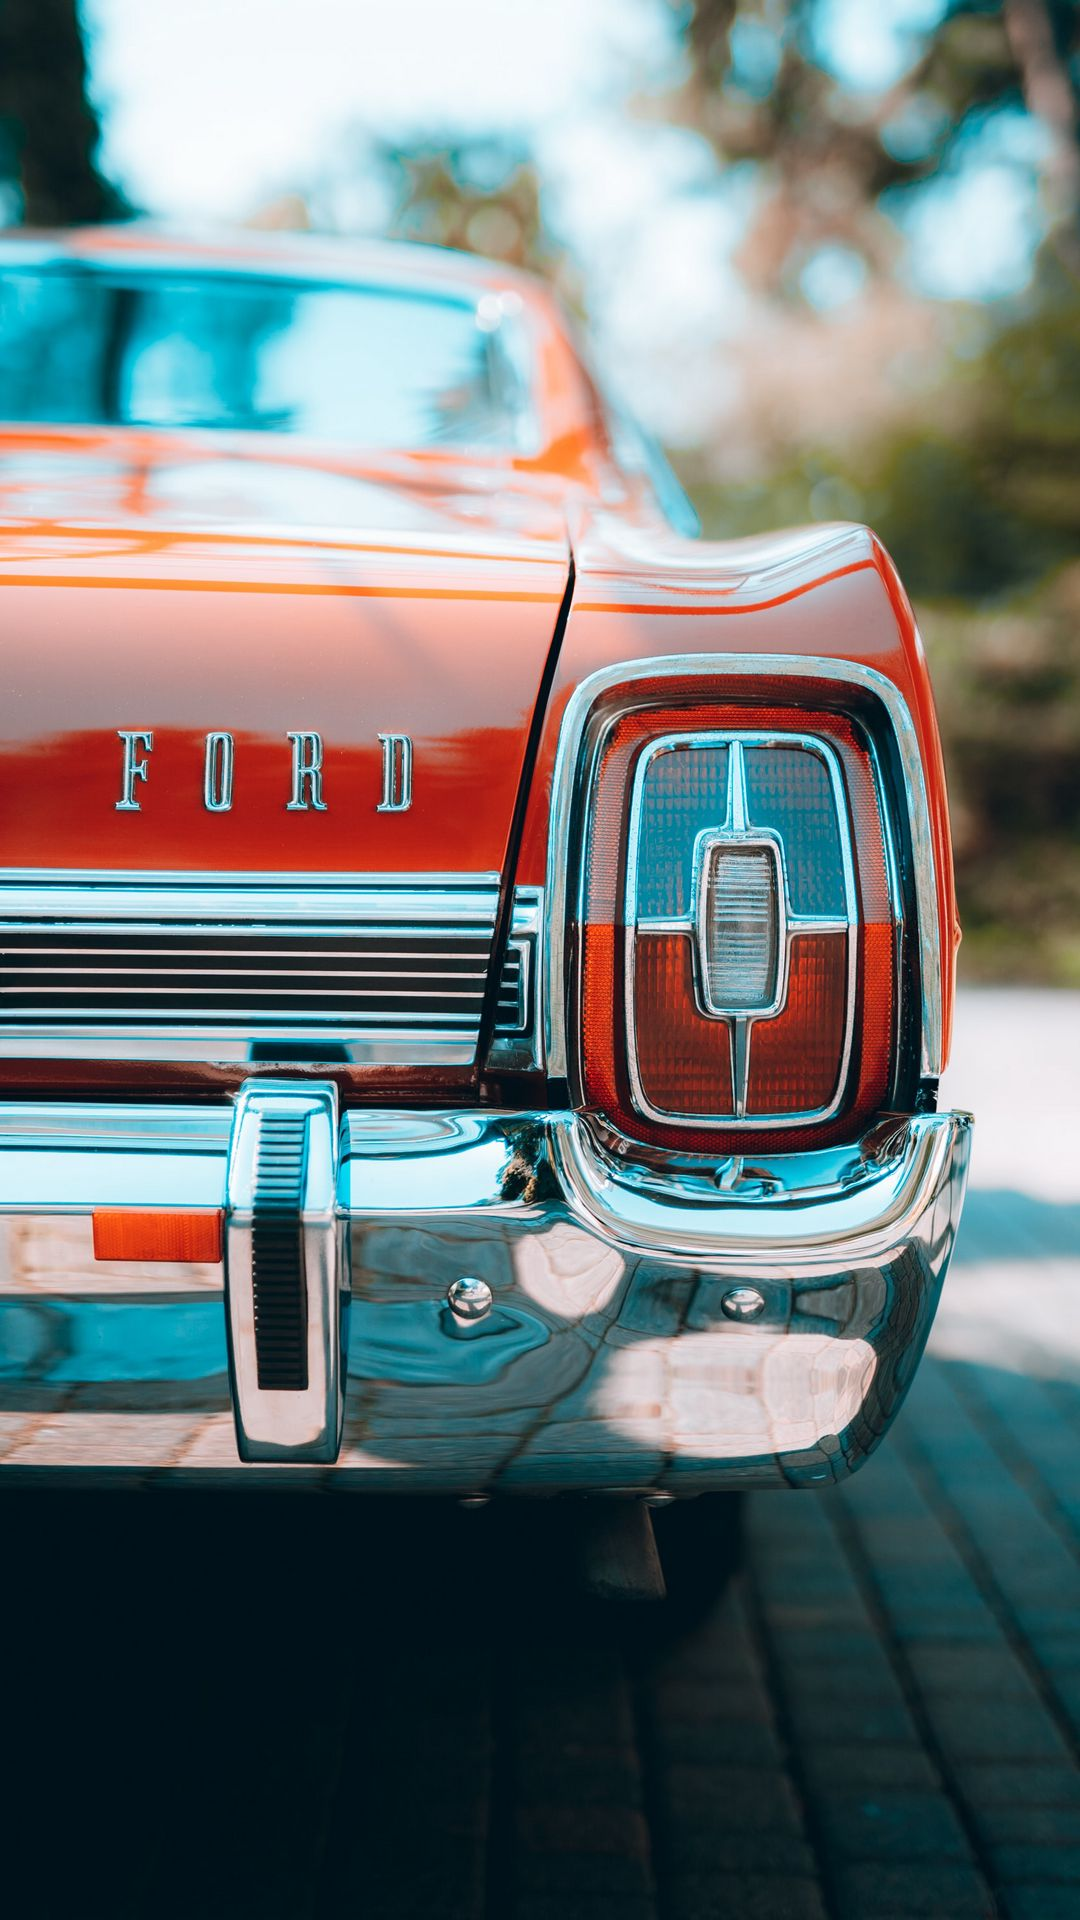 Ford Retro Car HD Wallpapers for Mobile